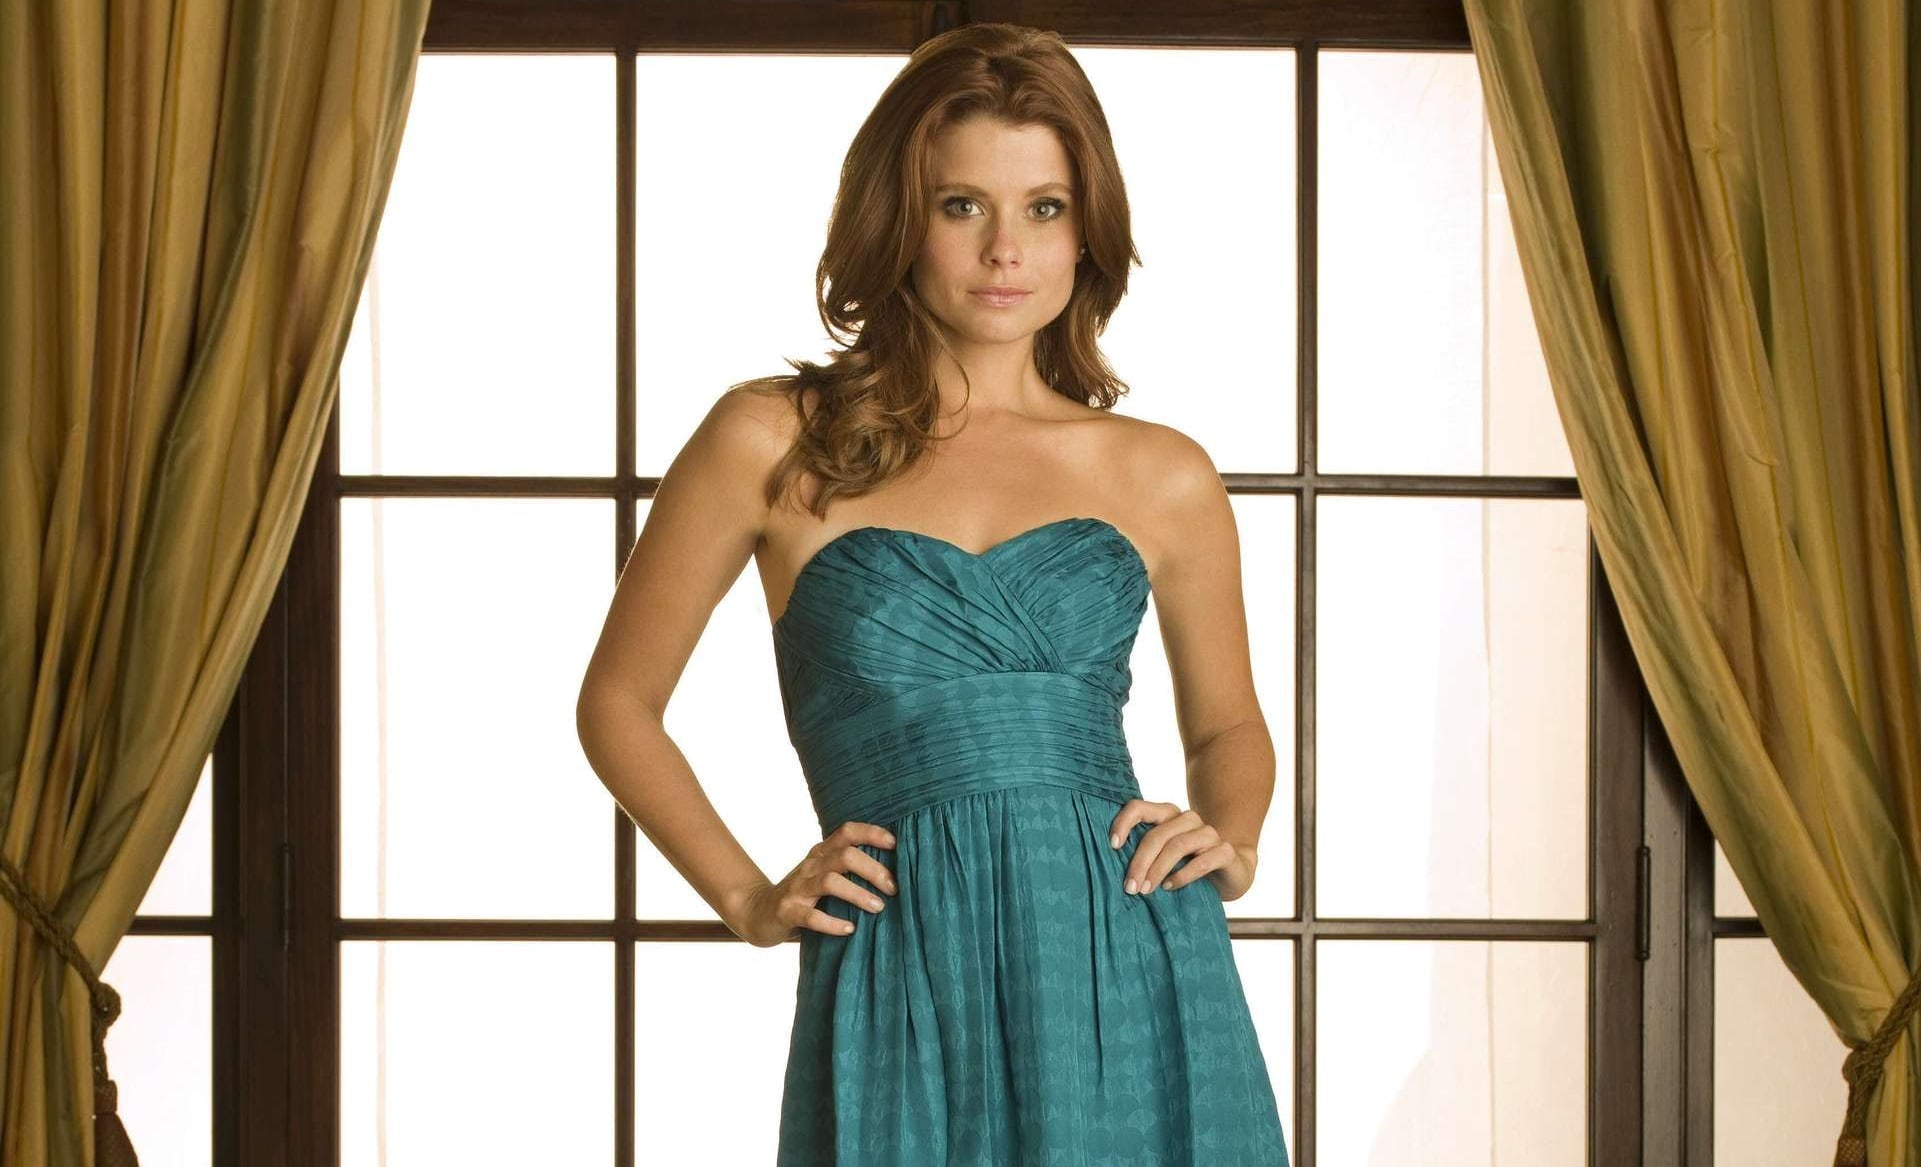 Joanna Garcia Full hd wallpapers